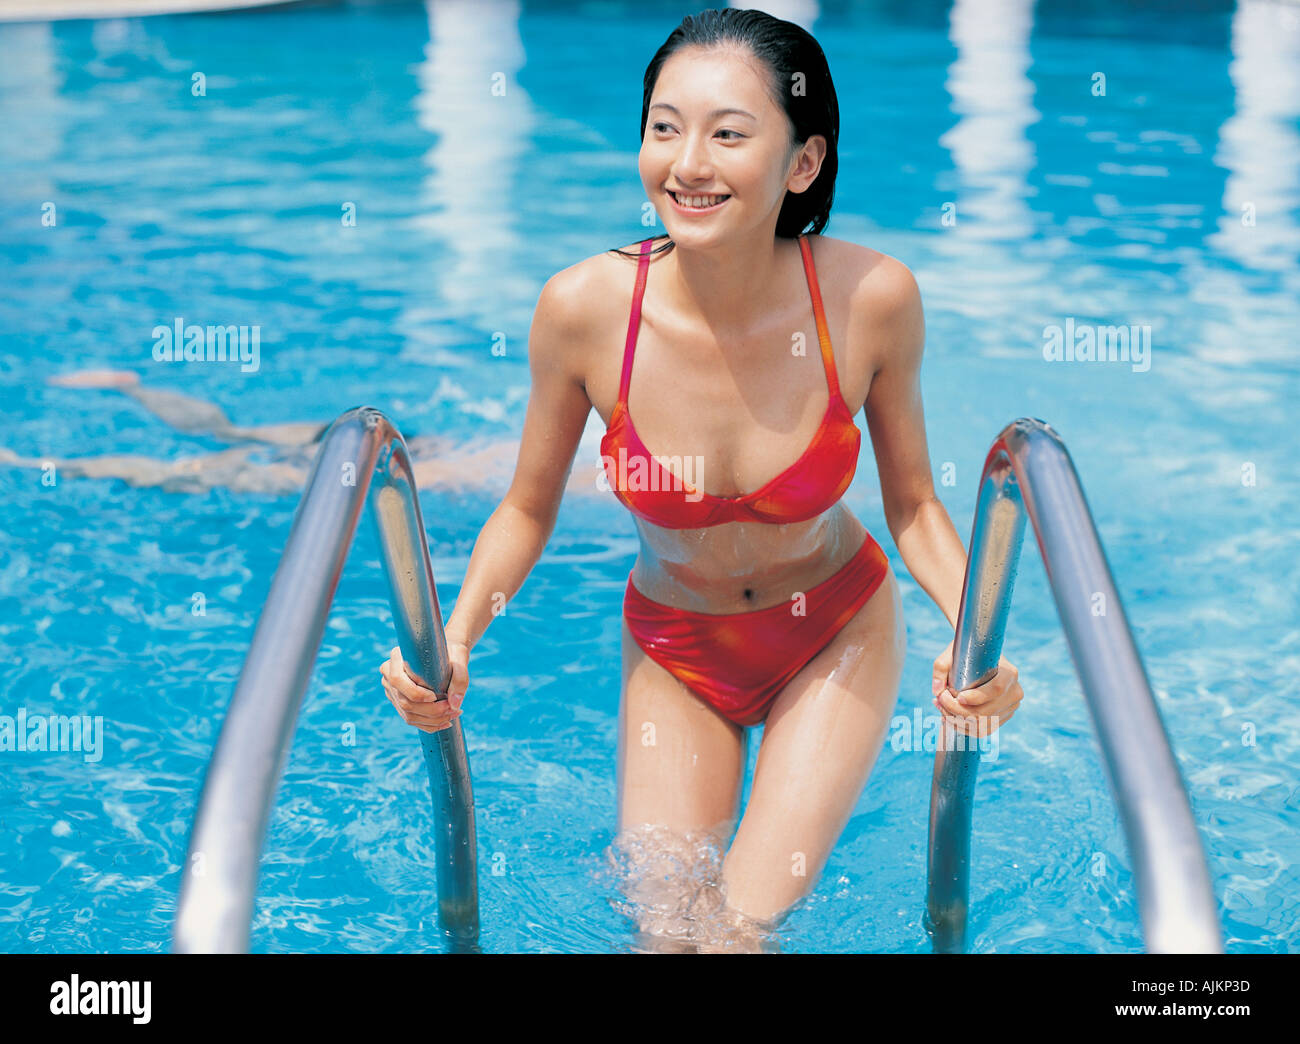 ba1bc3e57ff High angle view of a young woman stepping out of a swimming pool - Stock  Image